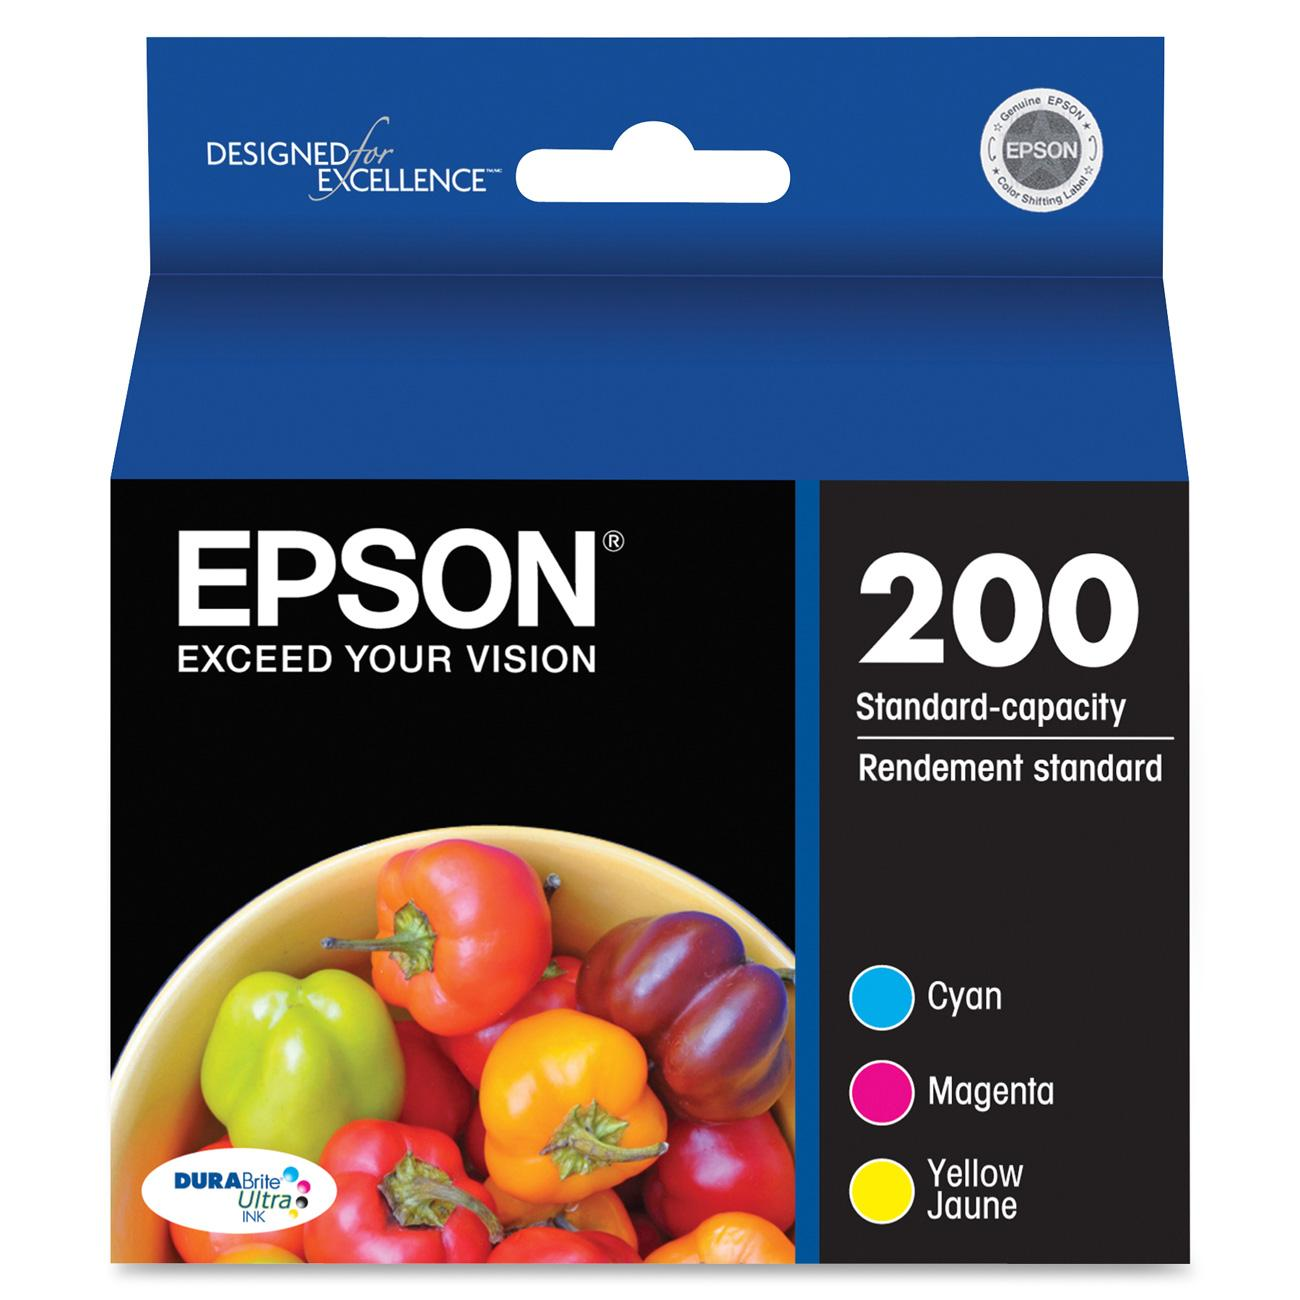 Epson 200 DURABrite Original Color Multi-Pack Ink Cartridge